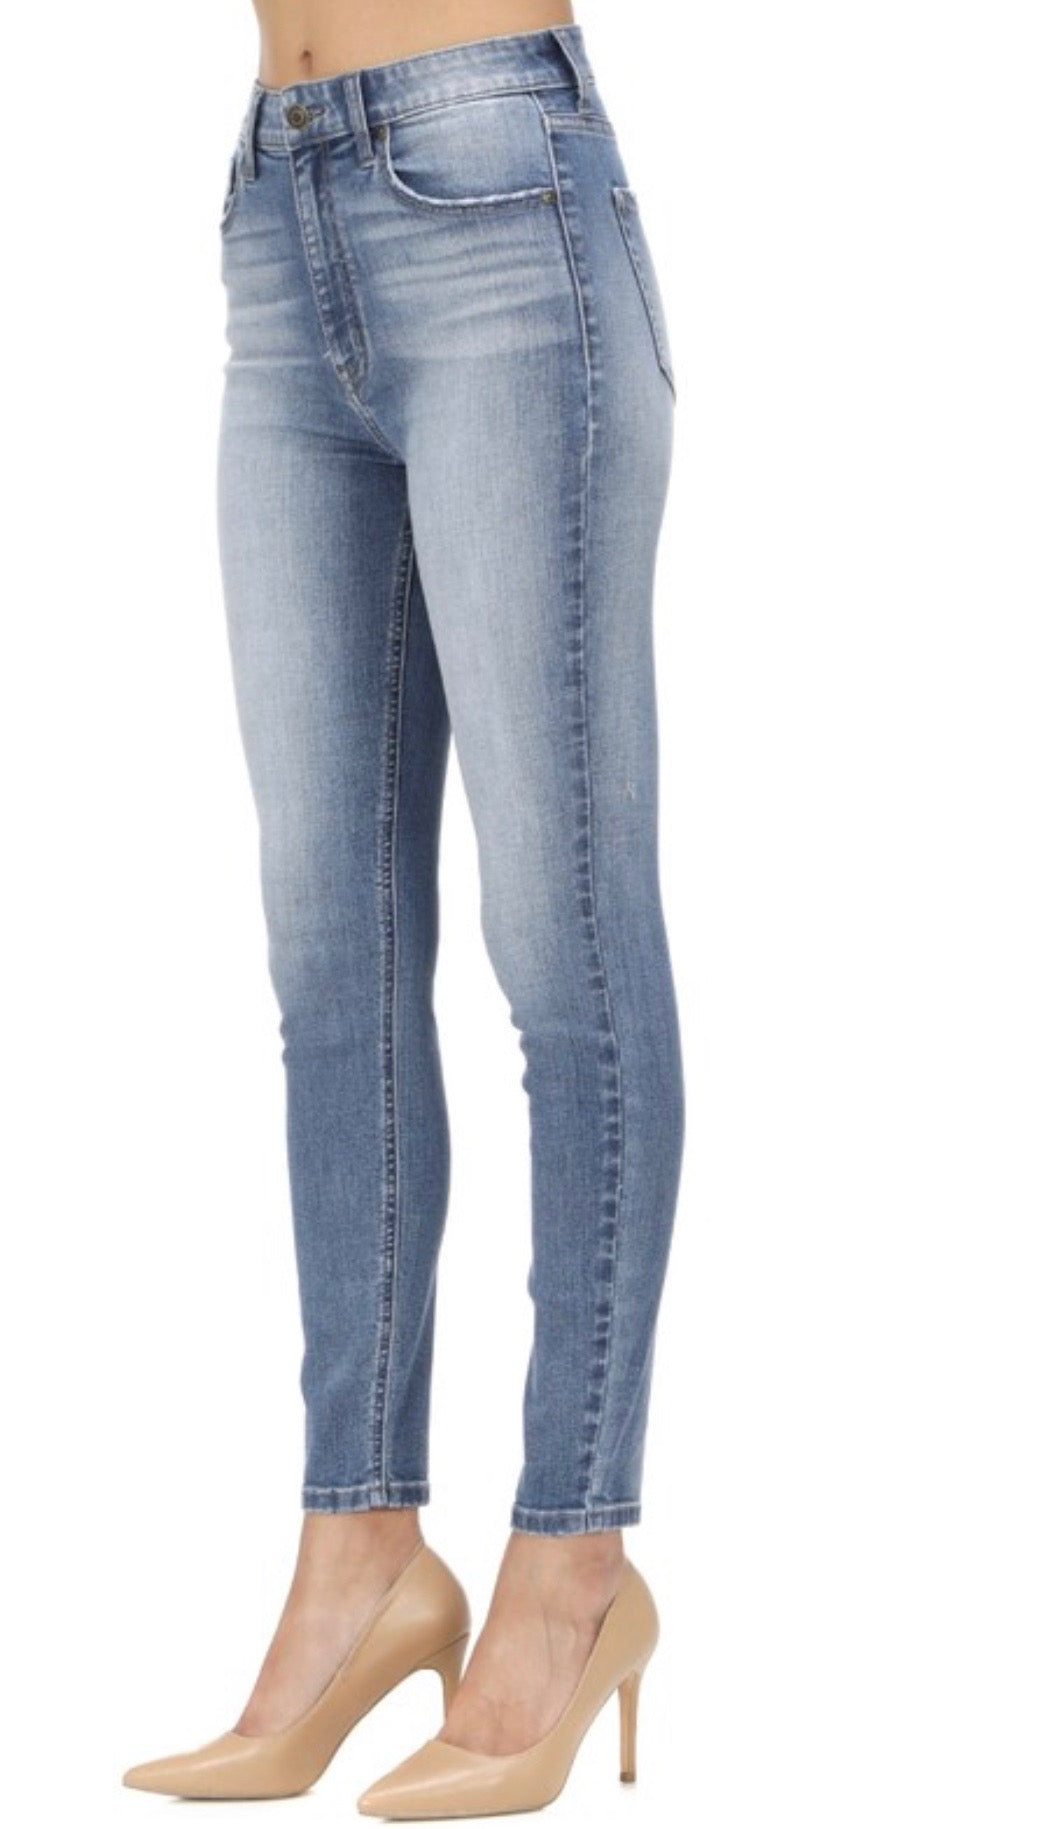 Jeans - Super High Rise Skinny Ankle Jeans